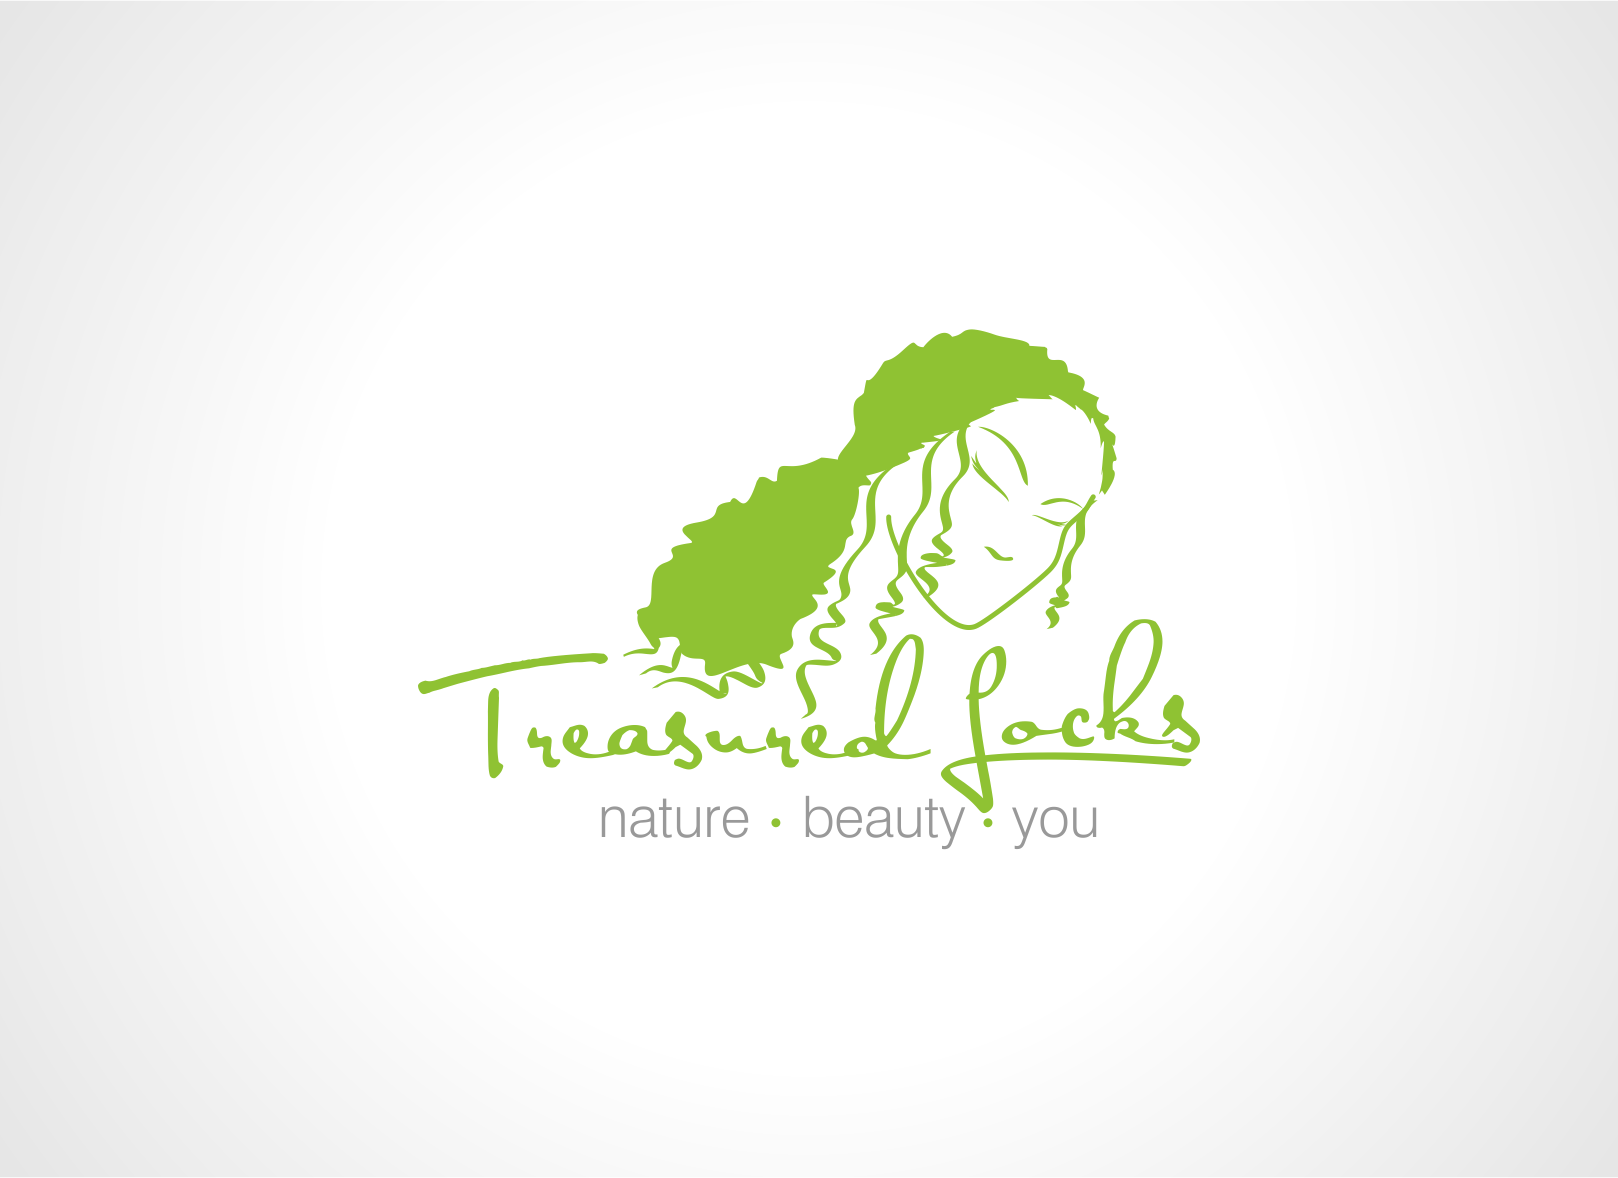 New logo wanted for Treasured Locks